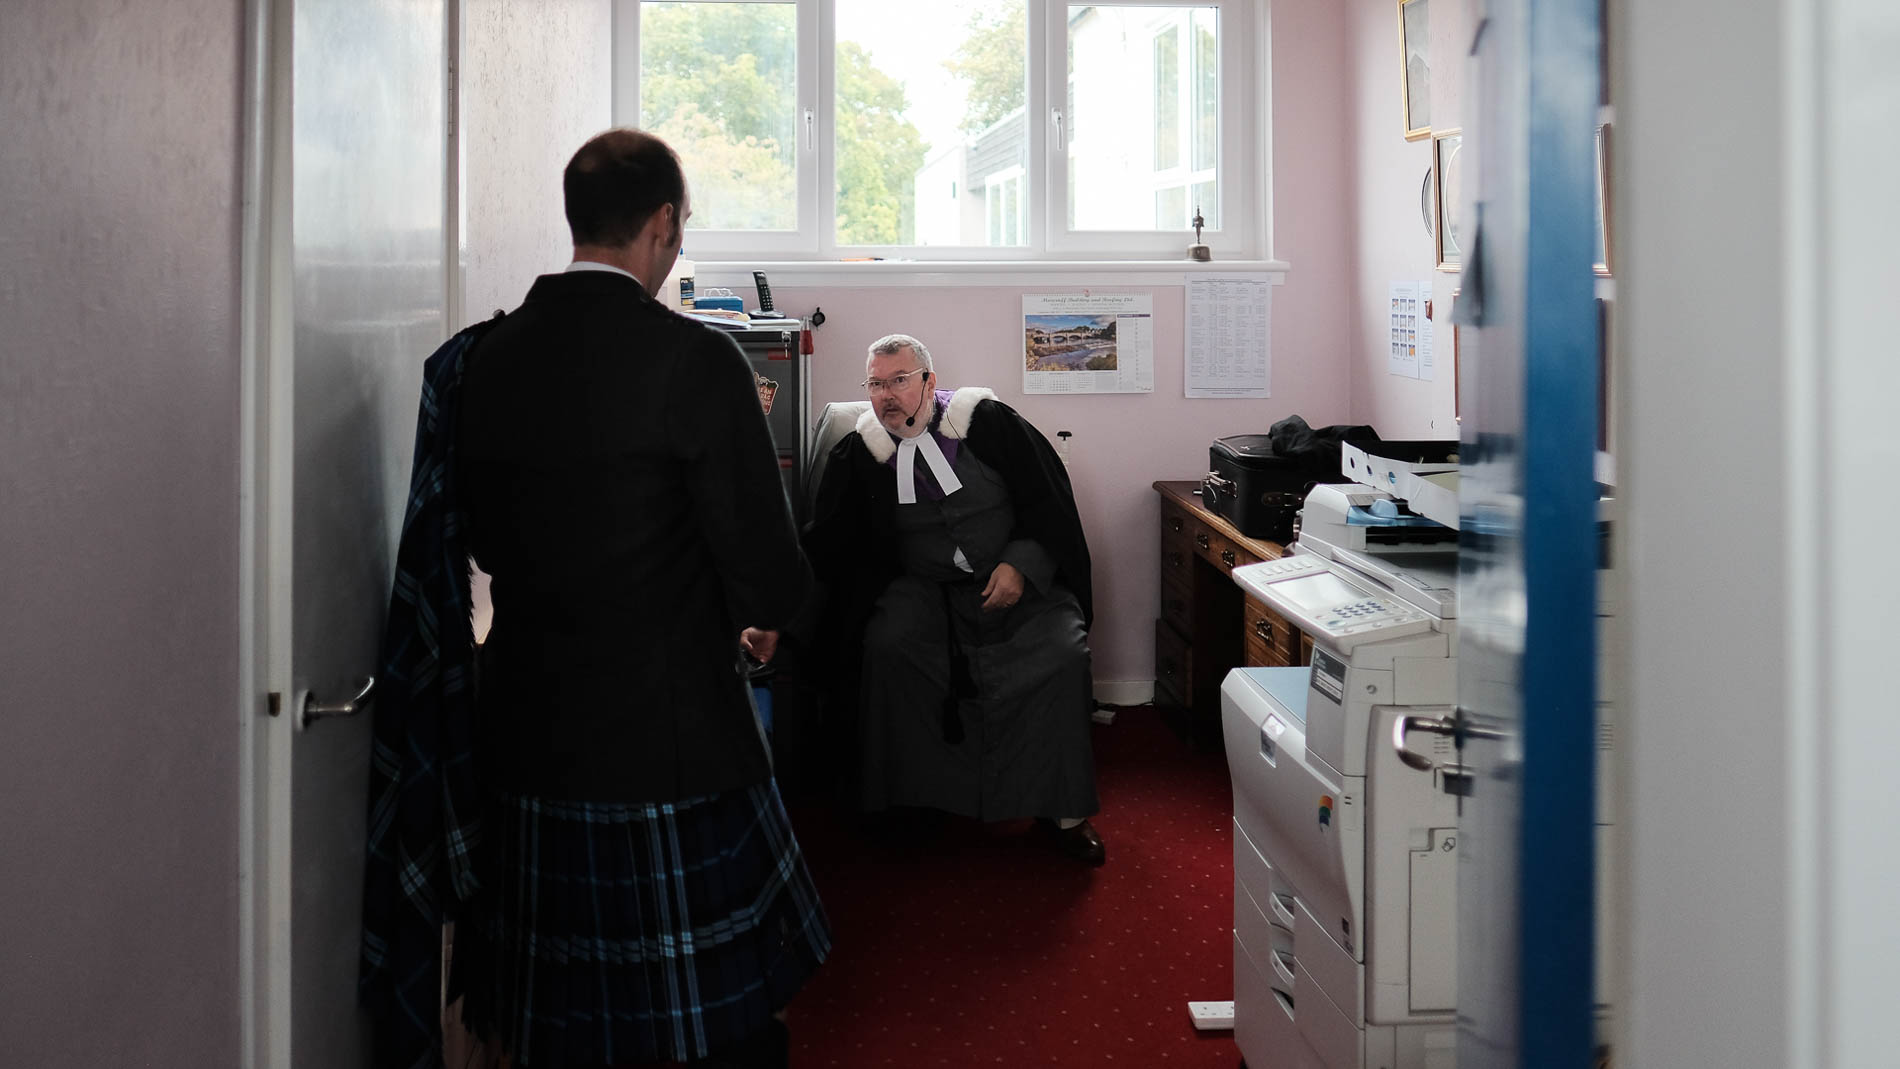 A colour photograph of the groom and minister chatting as they prepare for a wedding at Saint Andrew's Church, Clermiston, Edinburgh